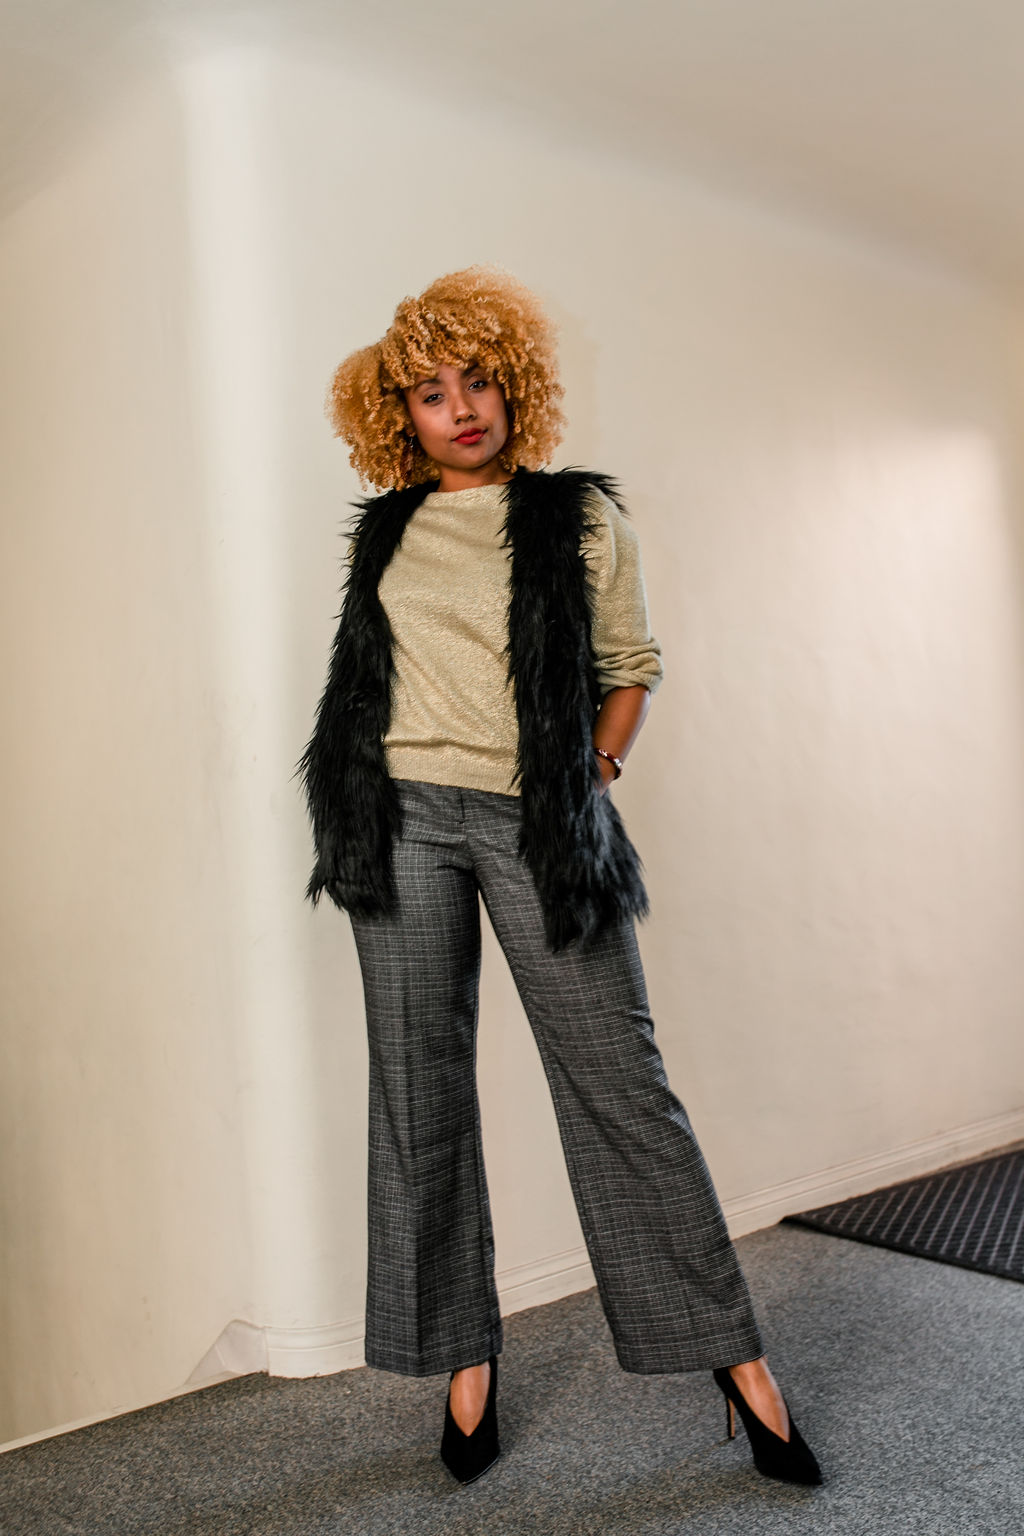 reflect -RSEE-LCM-Liveclothesminded-xmmtt-longbeach-2208-wear who you are-slacks-gold sweater-blonde curls-how to wear slacks-7 big moments- faux fur vest